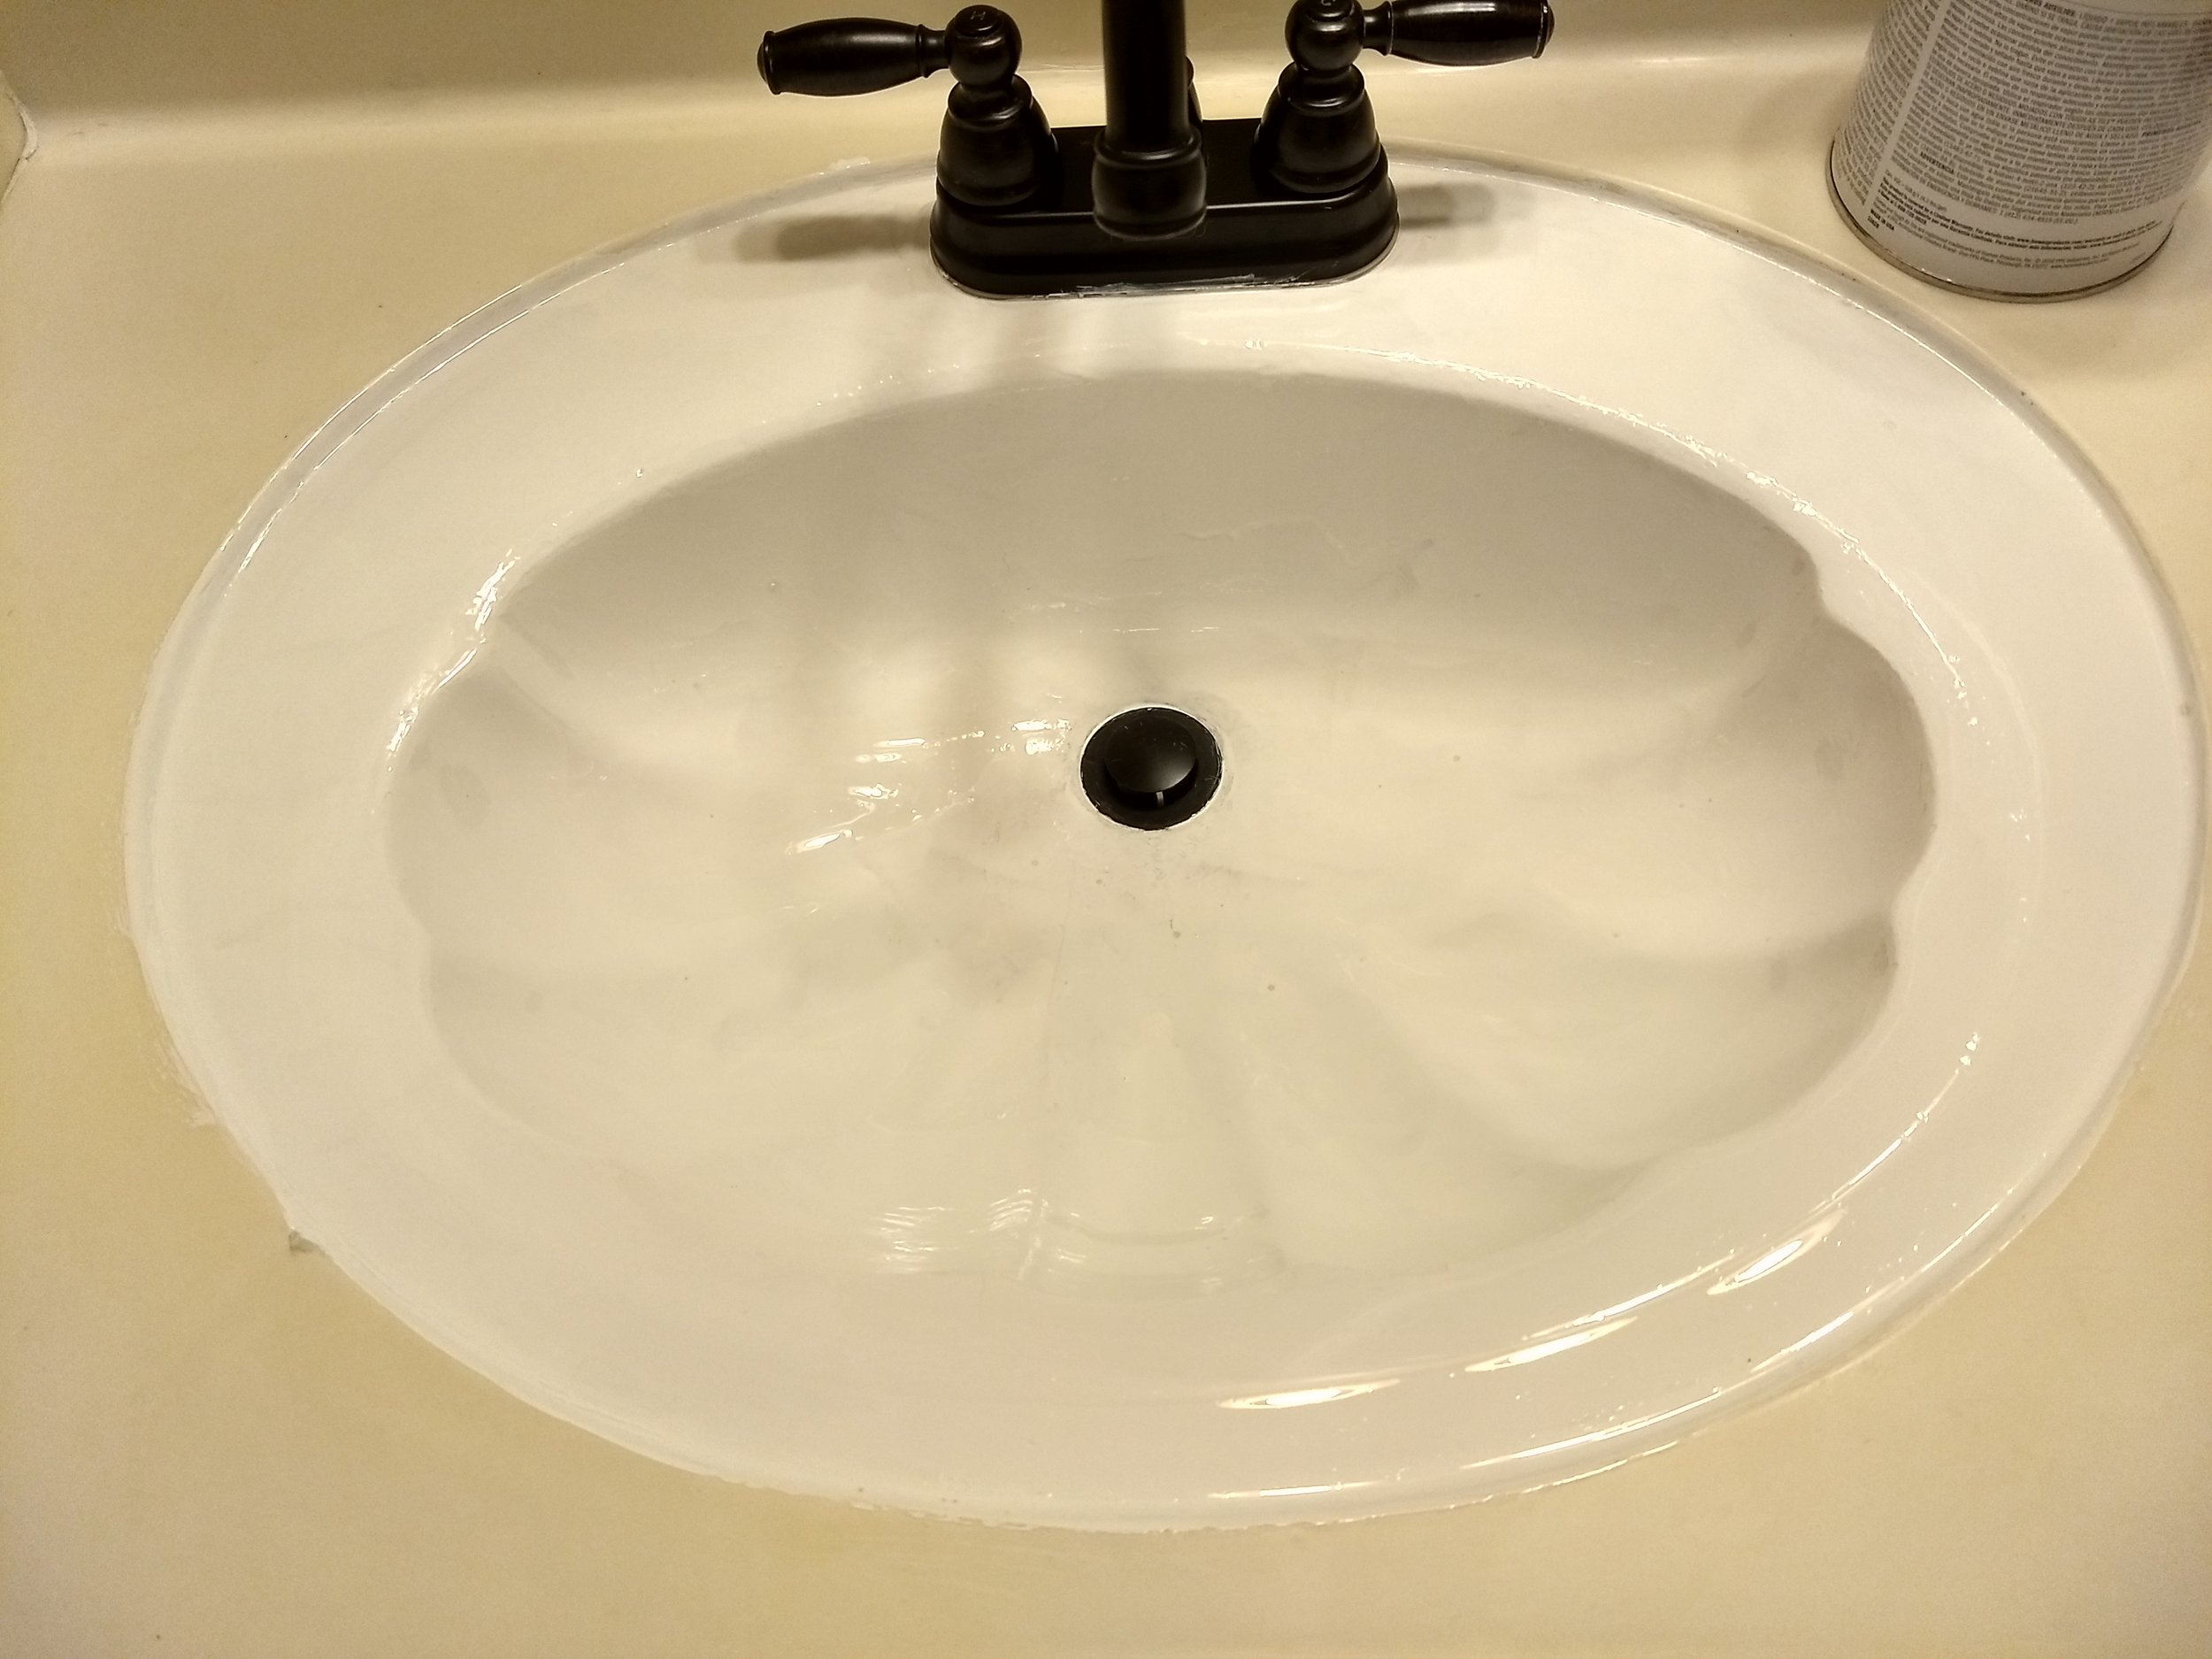 Here's the sink after the first coat of Tough As Tile.